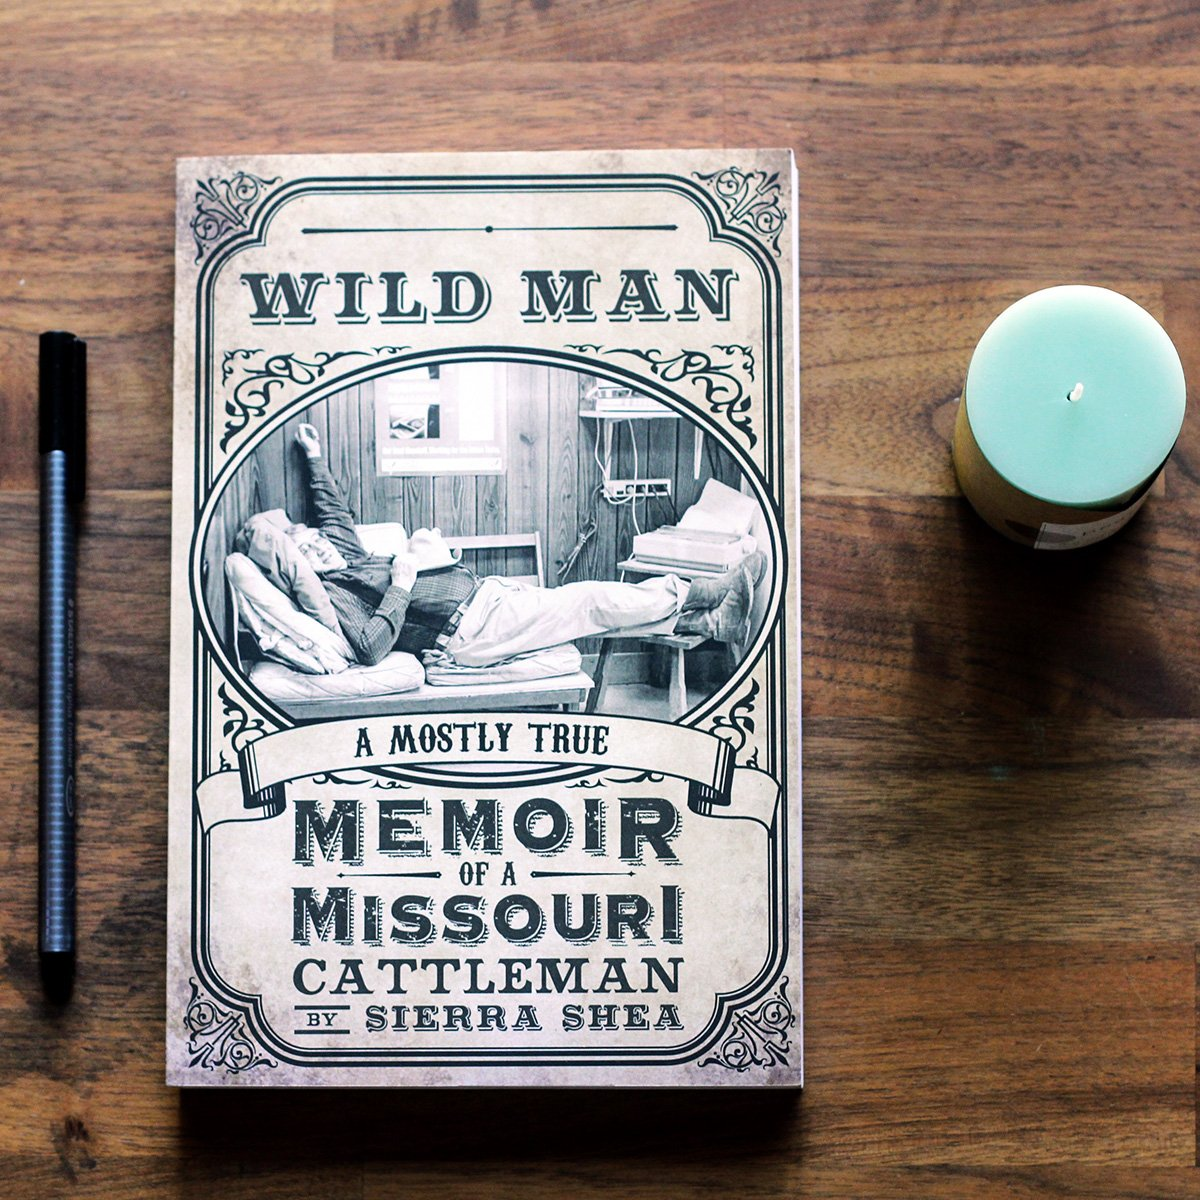 Wild Man: A Mostly-True Memoir of a Missouri Cattleman